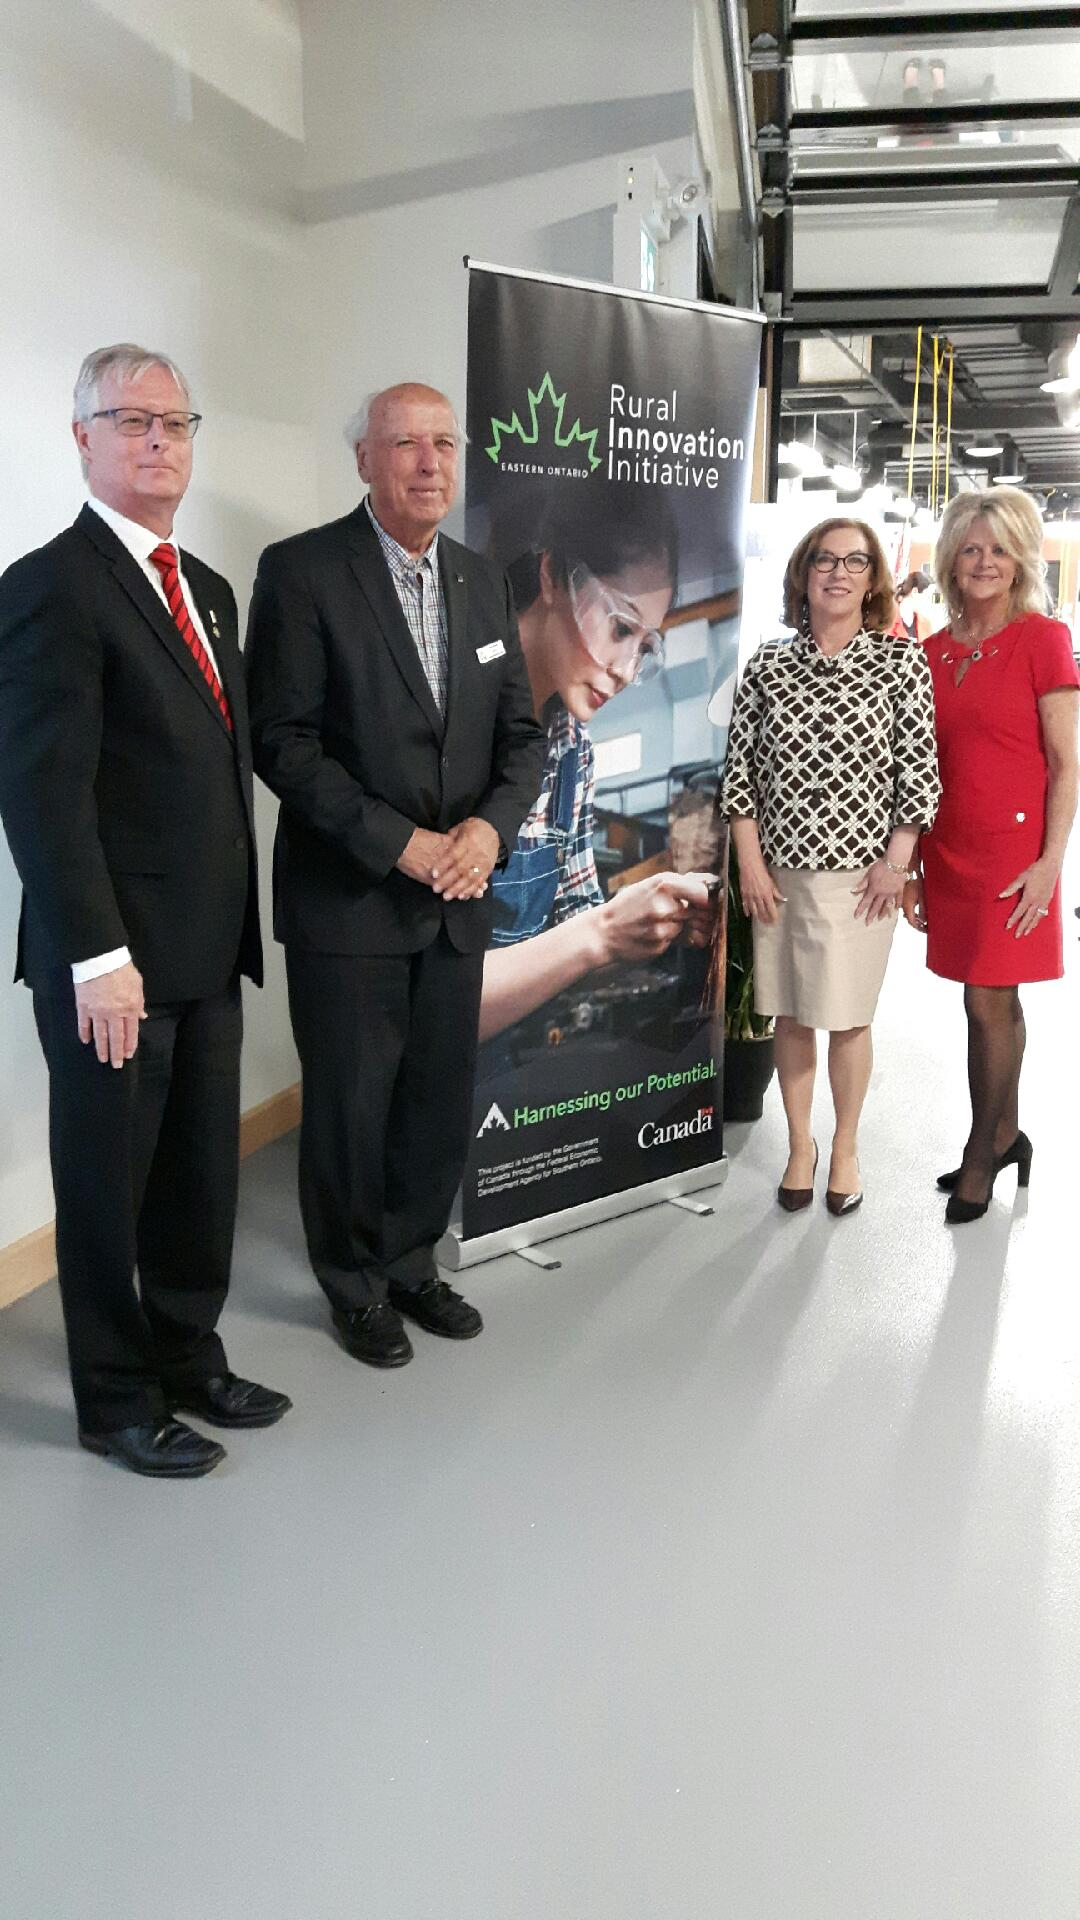 From left: Cobourg Mayor John Henderson, Venture 13 board chair Rick Holmes, Northumberland-Peterborough South MP Kim Rudd and Northumberland Community Futures Development executive director Wendy Curtis